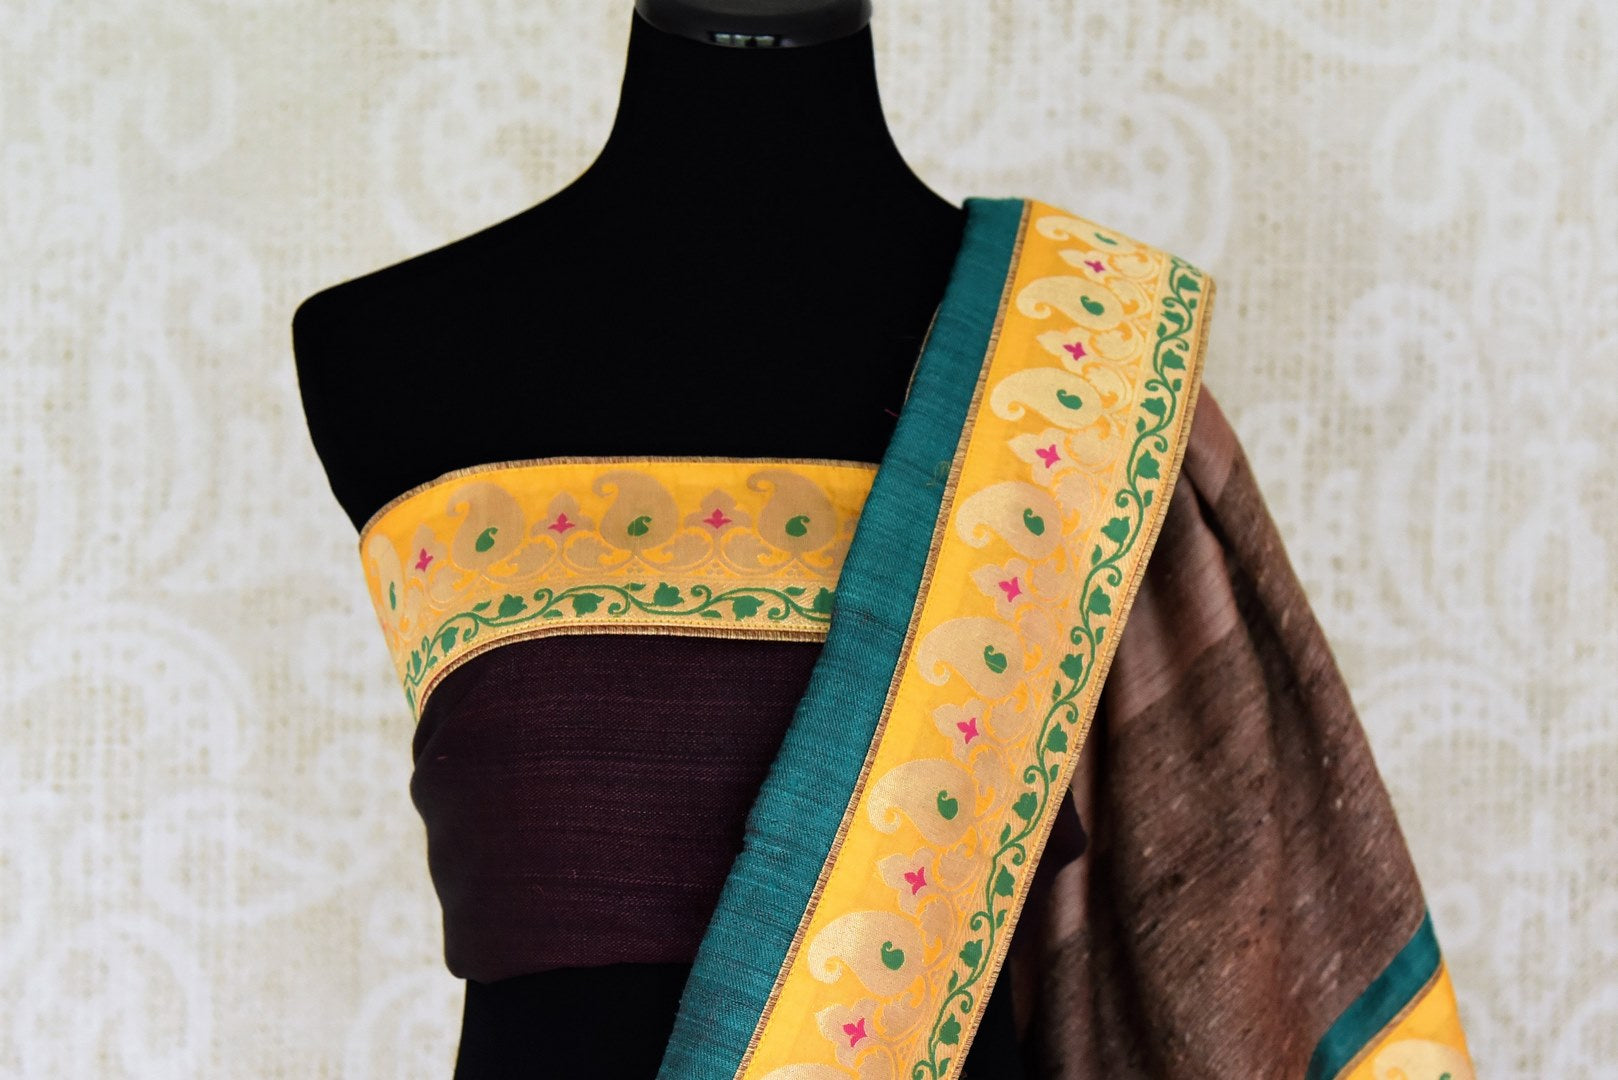 Buy blue and green Pashmina saree online in USA with khaddi Banarasi border from Pure Elegance online store. Visit our exclusive Indian clothing store in USA and get floored by a range of exquisite Indian Kanjivaram saris, Banarasi sarees, silk sarees, Indian jewelry and much more to complete your ethnic look.-blouse pallu